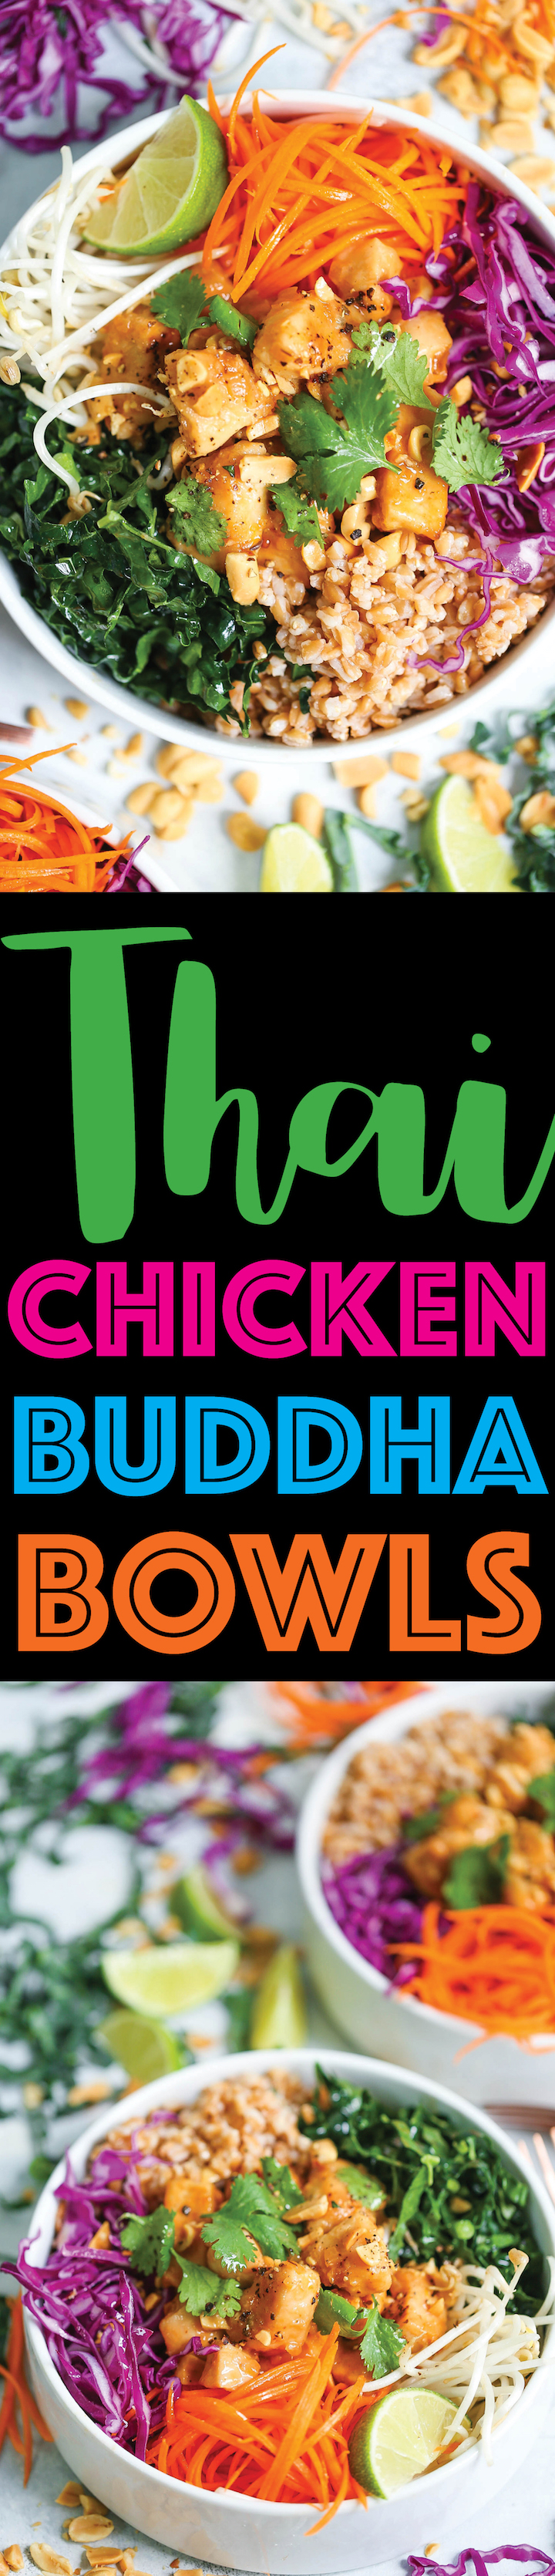 Thai Chicken Buddha Bowls - Healthy, hearty and nutritious bowls filled with whole grains, plenty of veggies, and a simple peanut sauce that is absolutely to die for!